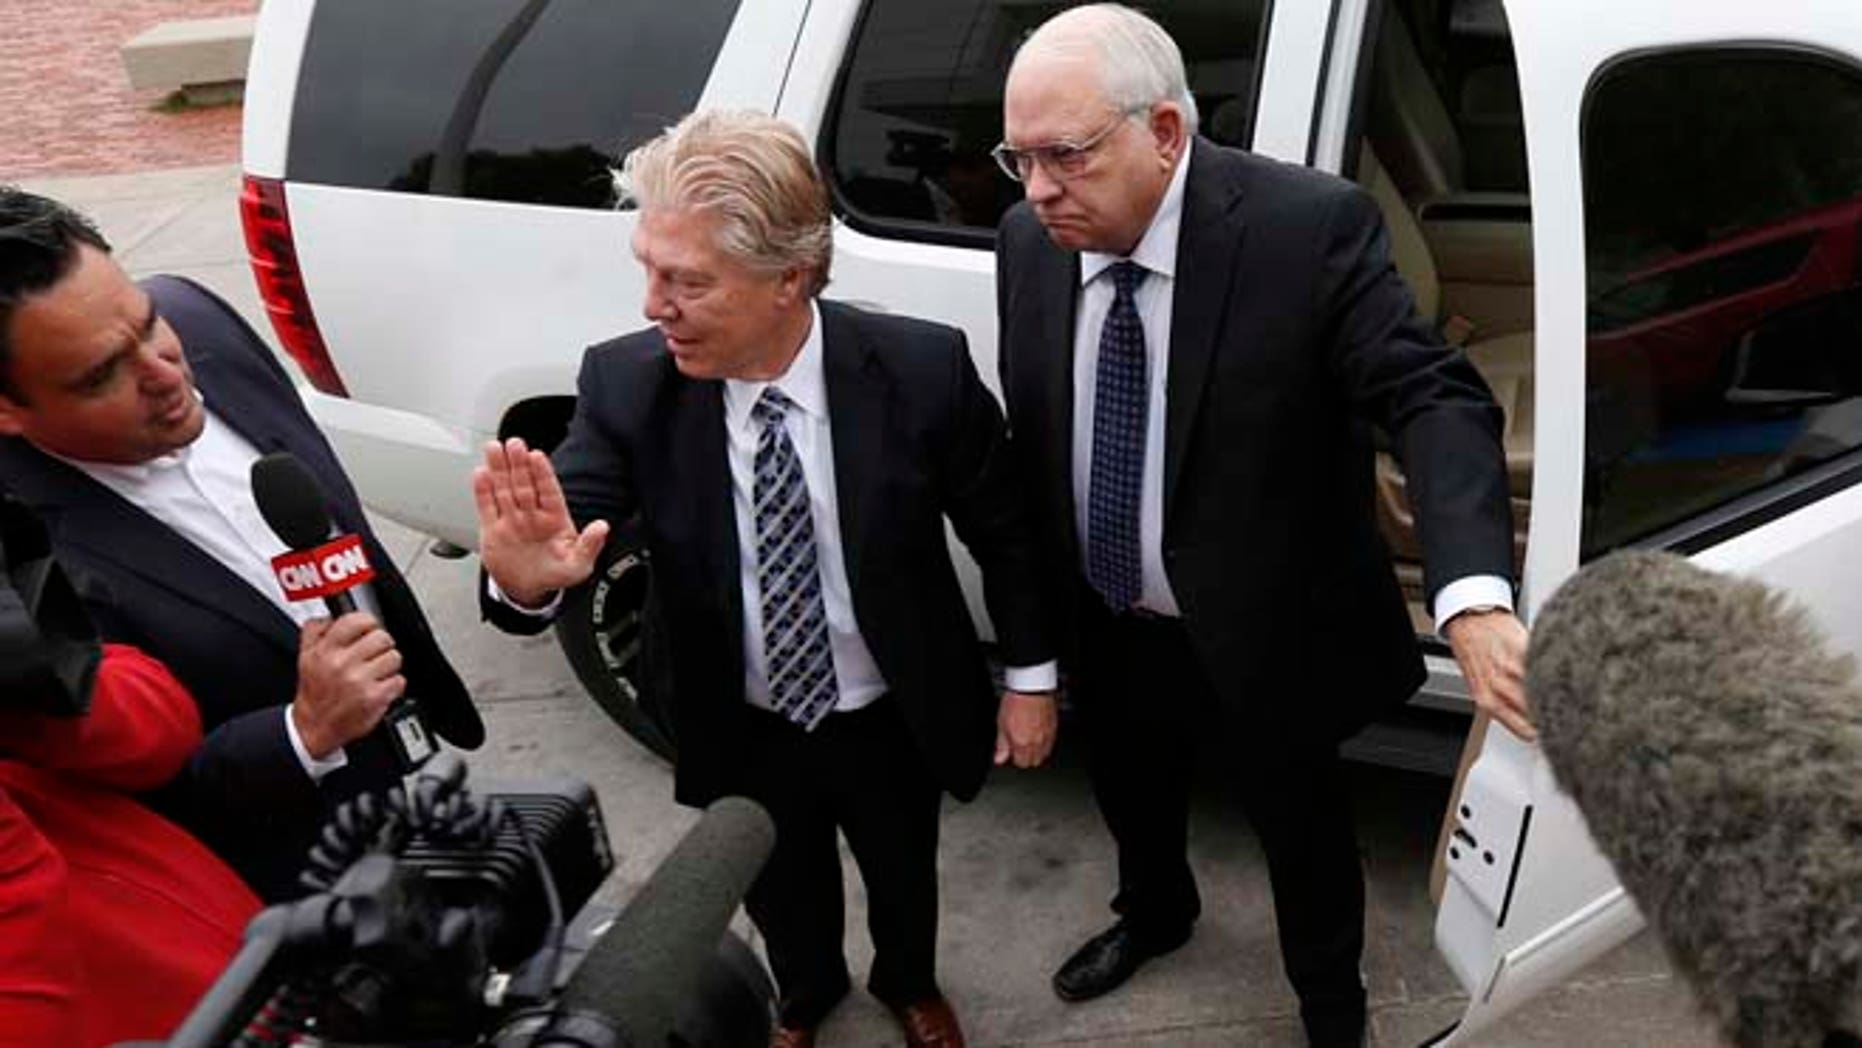 April 14, 2015: Robert Bates, right, arrives at the Tulsa County Jail with his attorney, Clark Brewster in Tulsa, Okla.